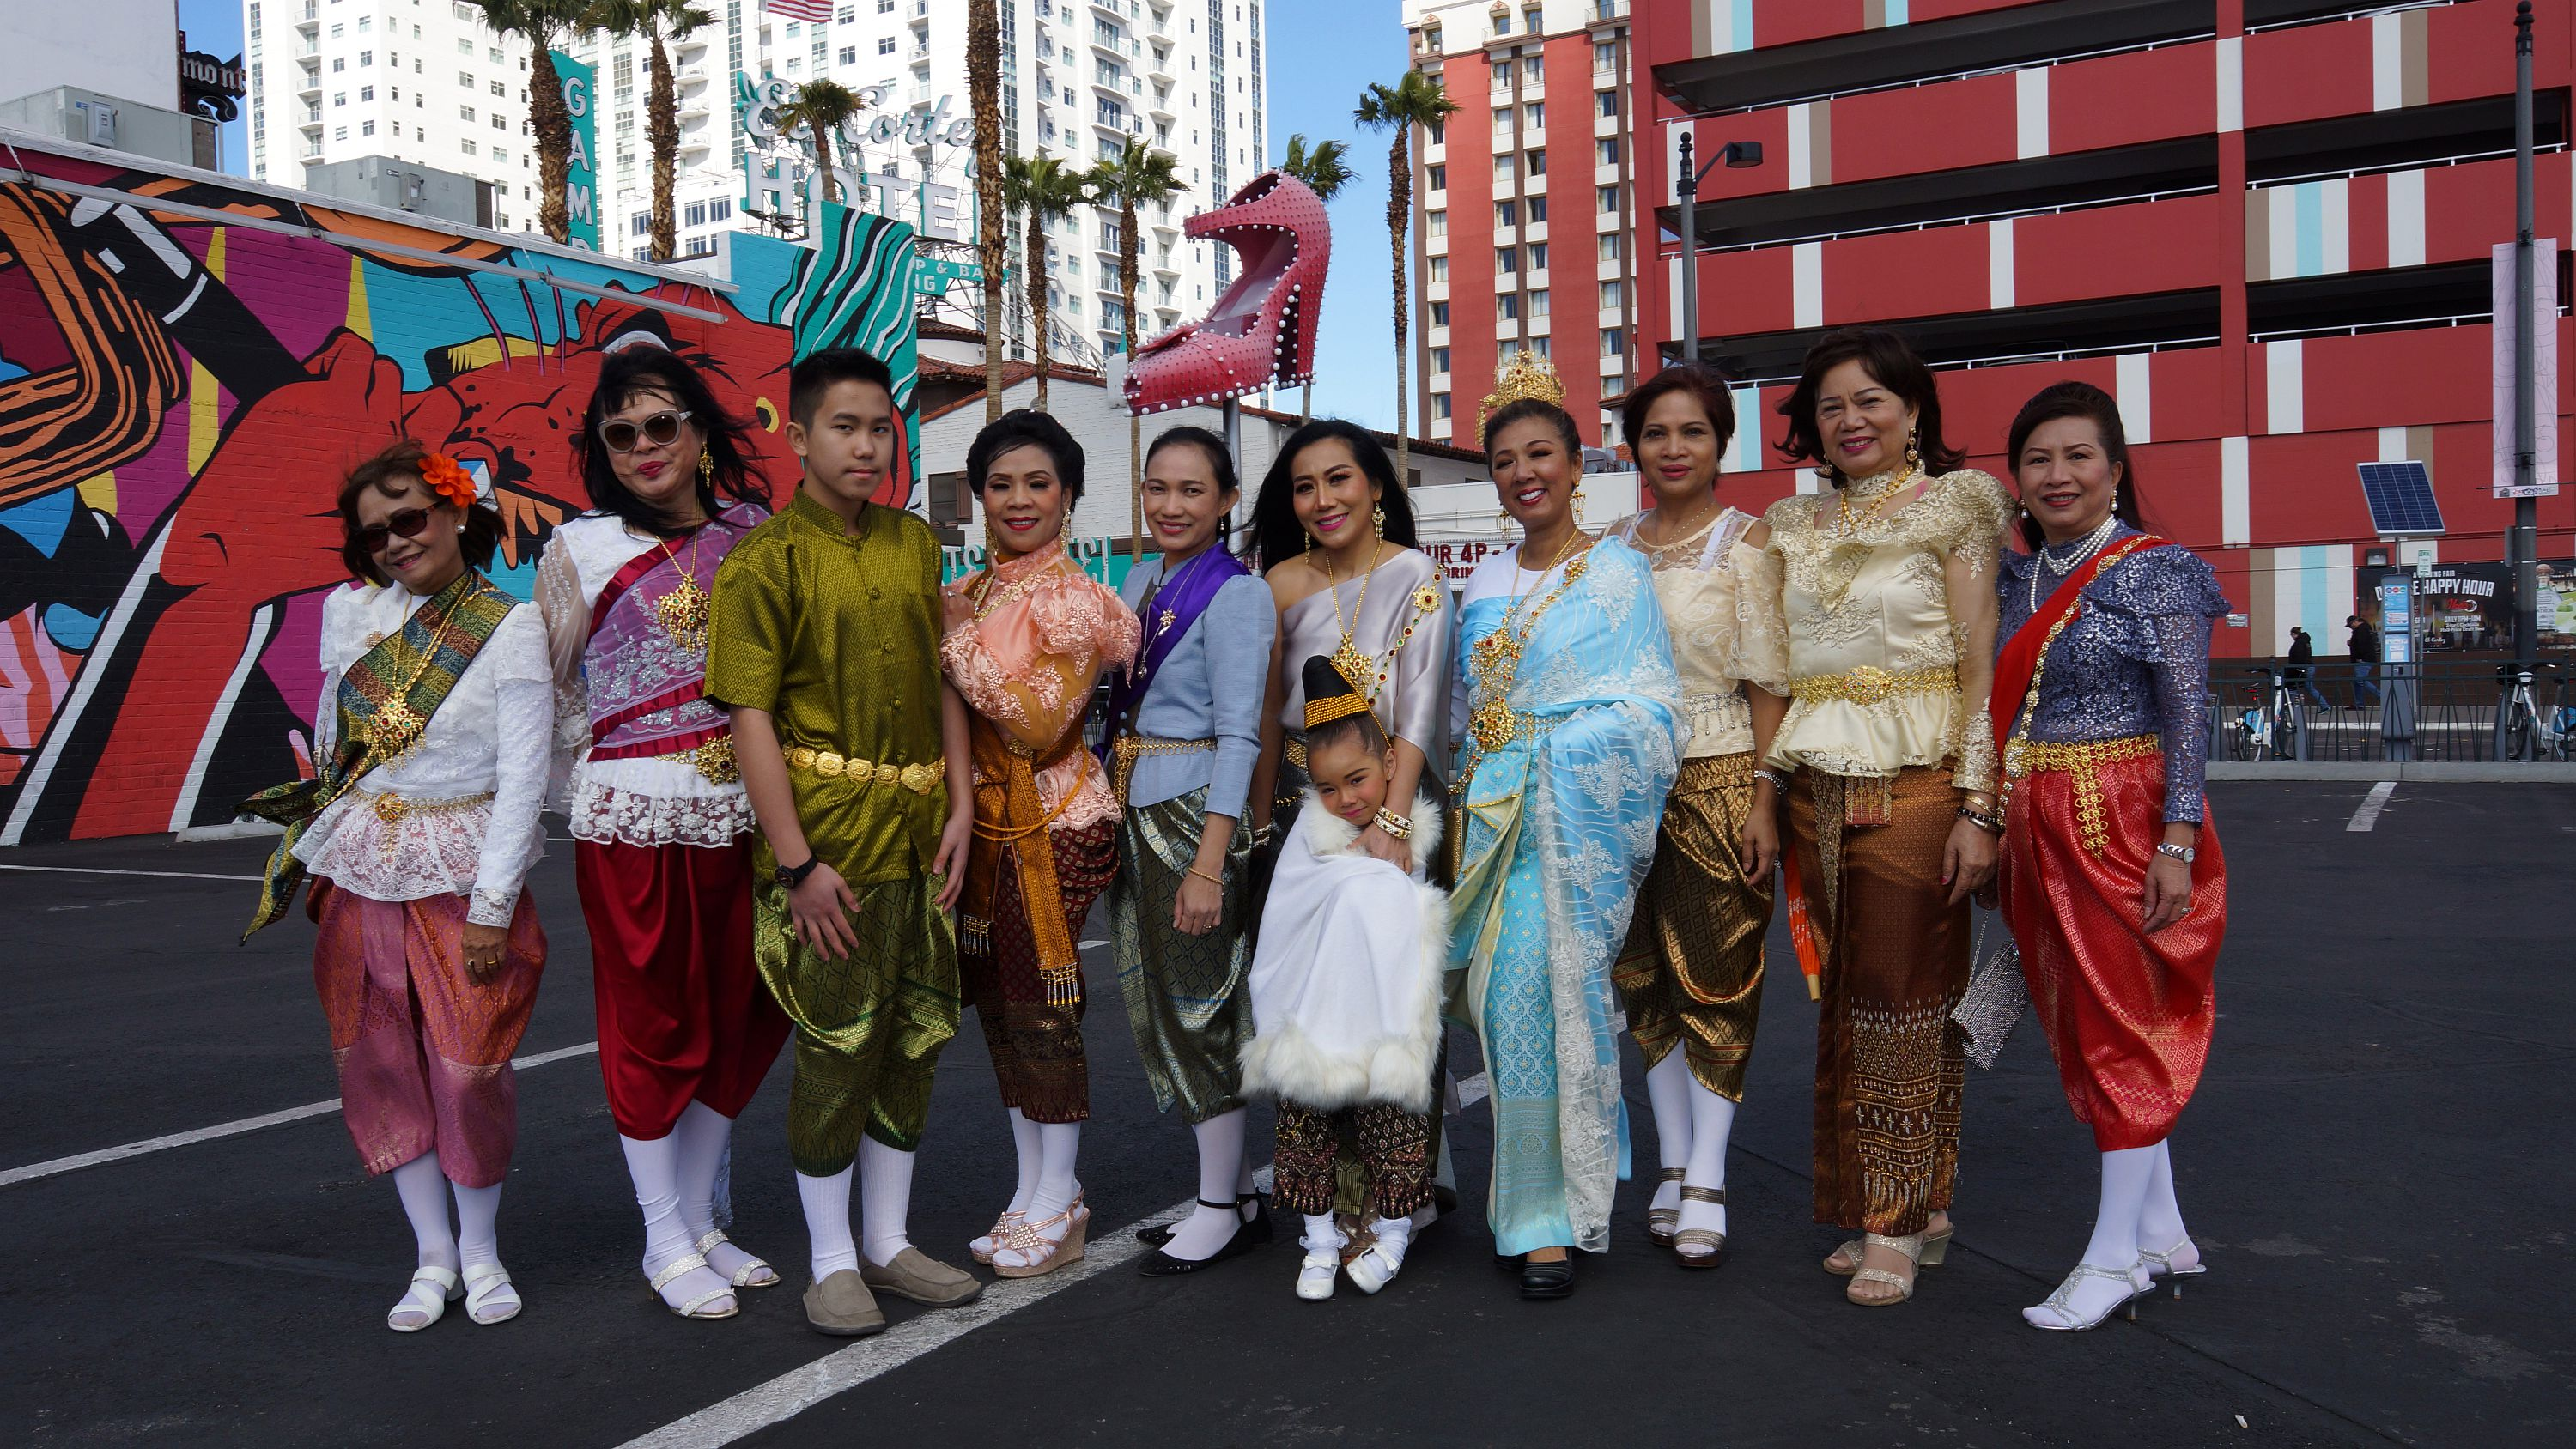 Thai Community in Downtown Las Vegas Fremont Street during the 2019 Chinese New Year Parade.